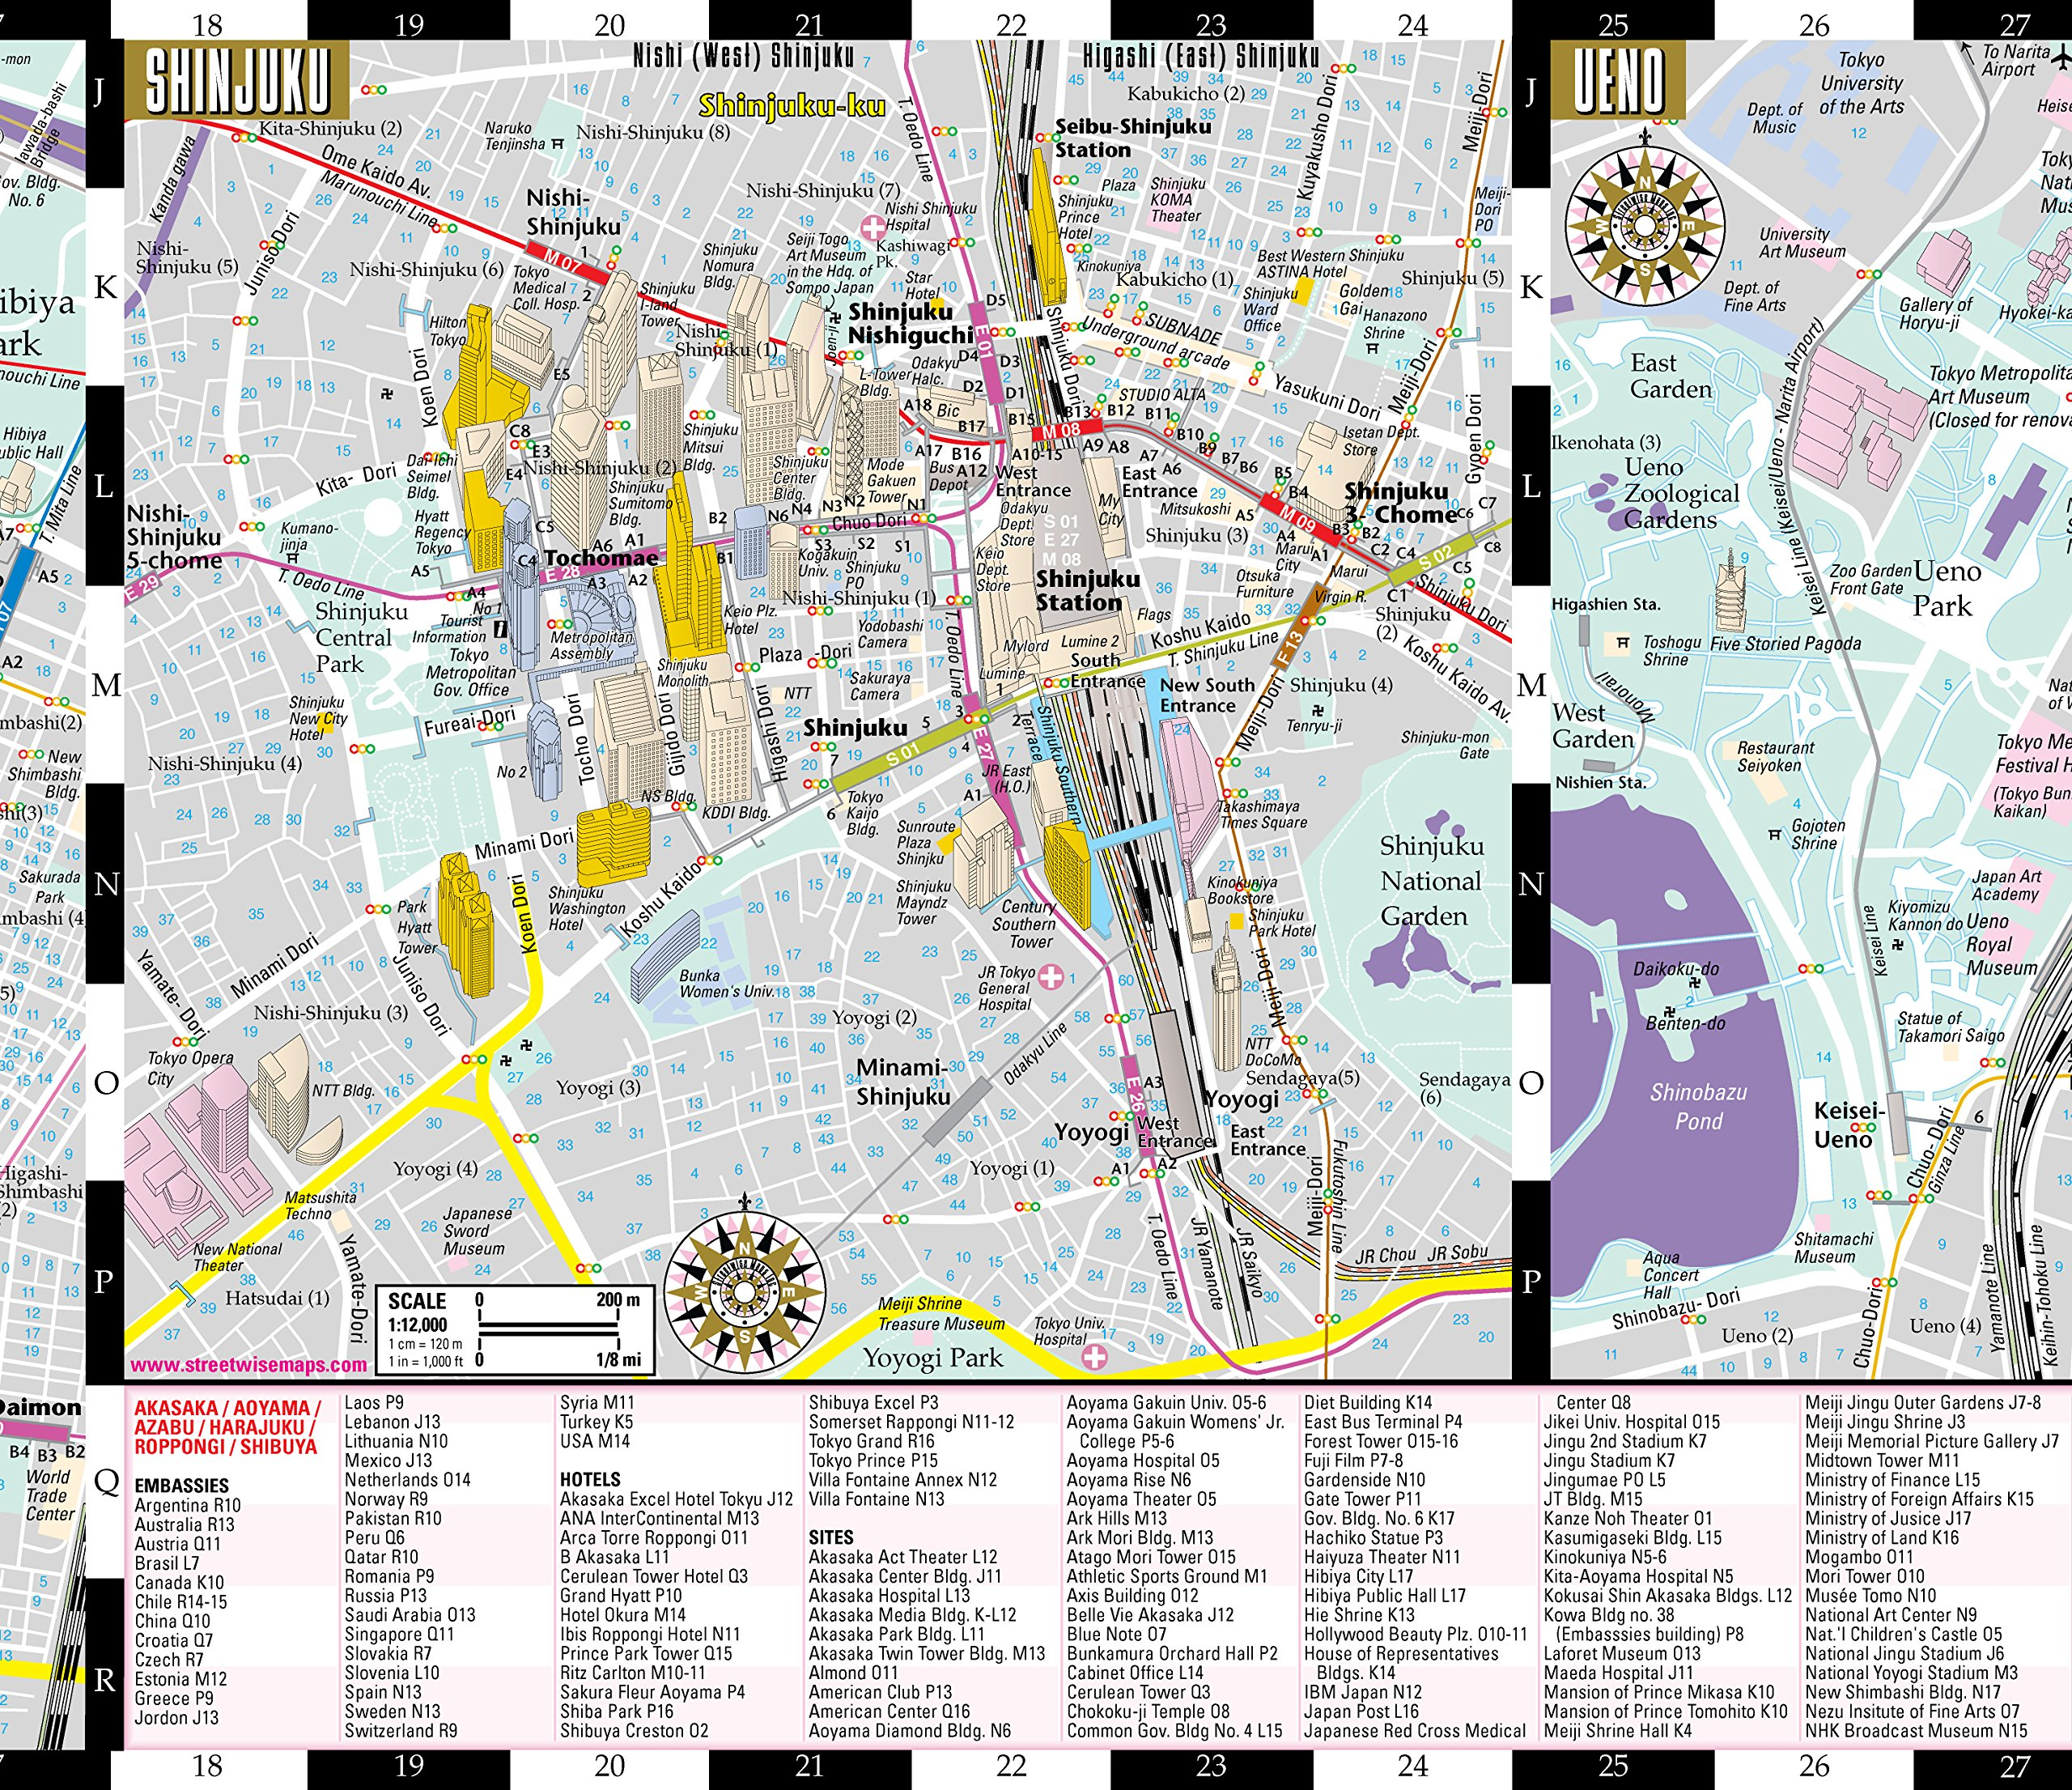 Streetwise Tokyo Map Laminated City Center Street Map of Tokyo